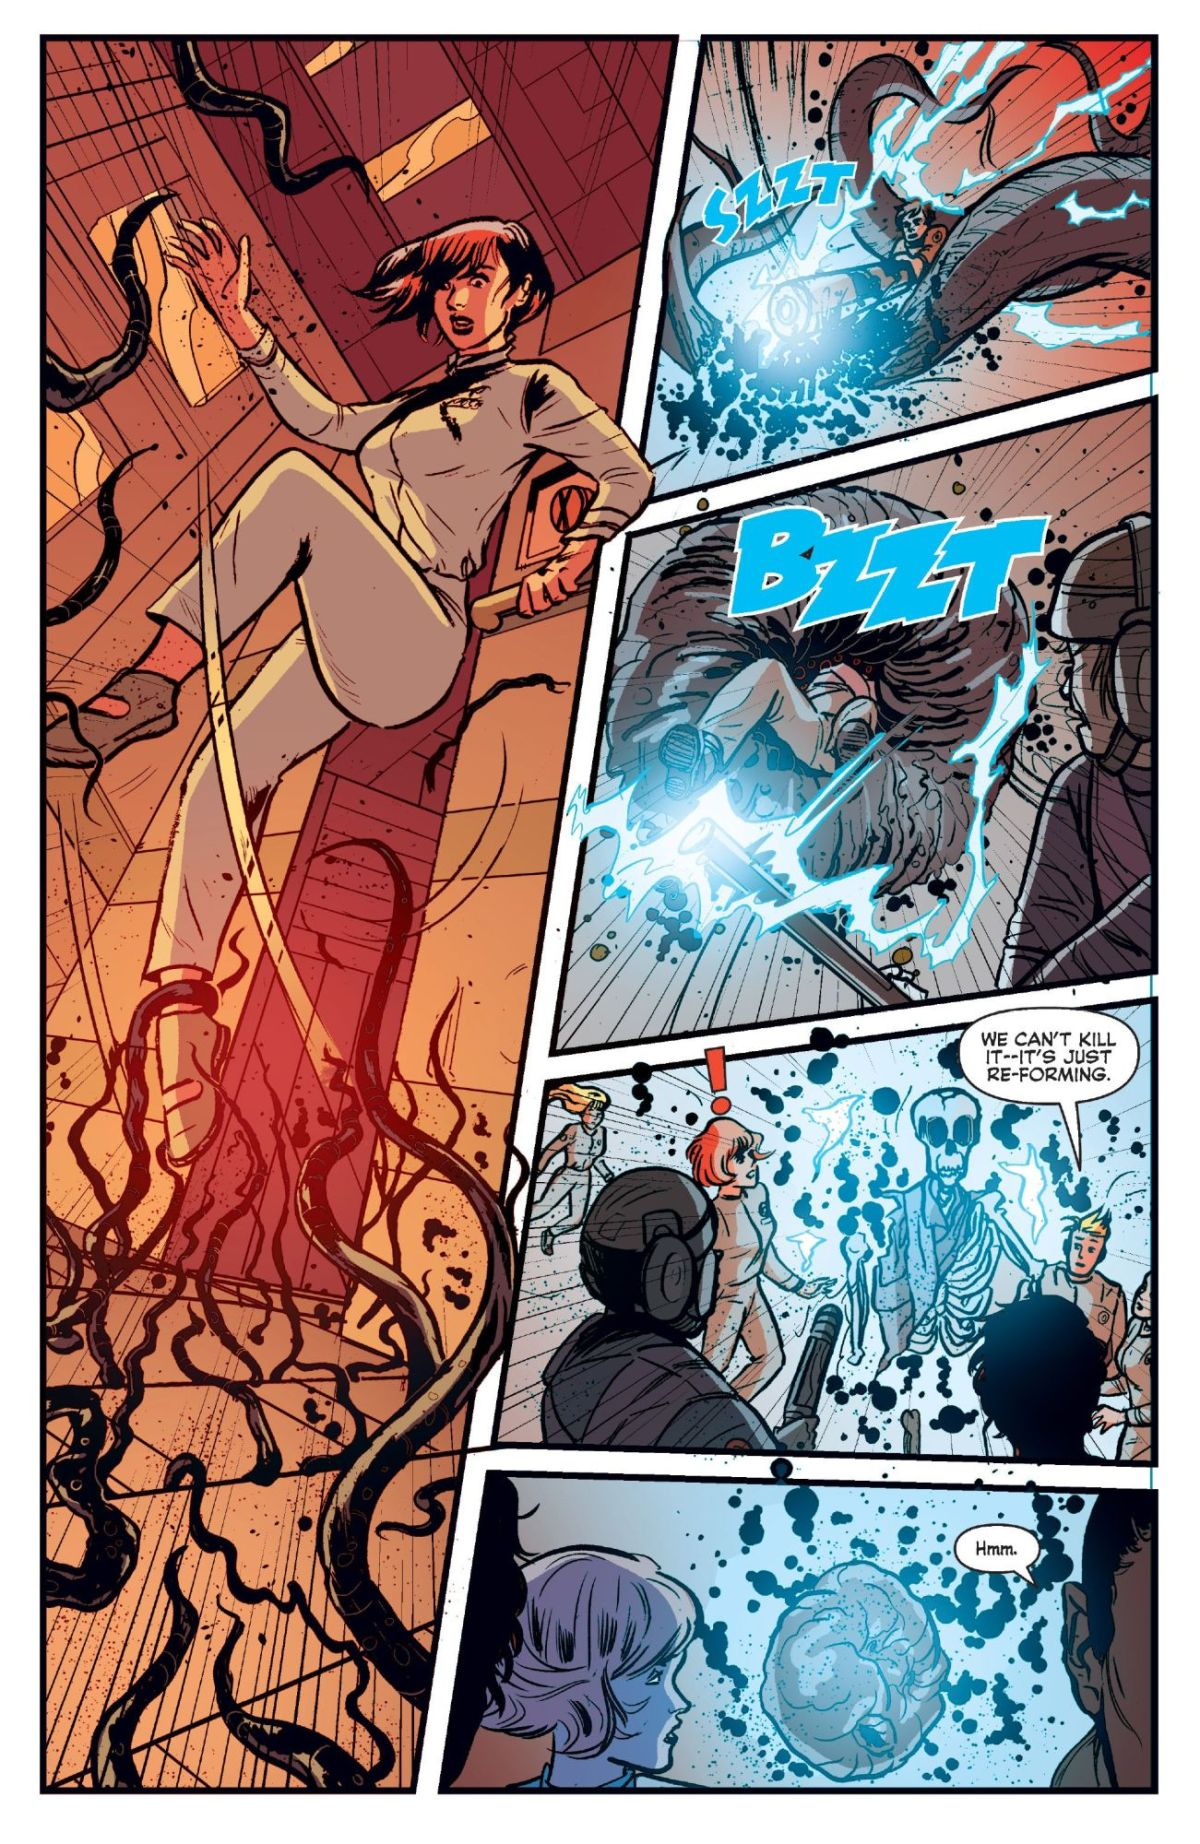 The killer alien begins his attack by devouring a crew member in Josie and the Pussycats in Space #3.